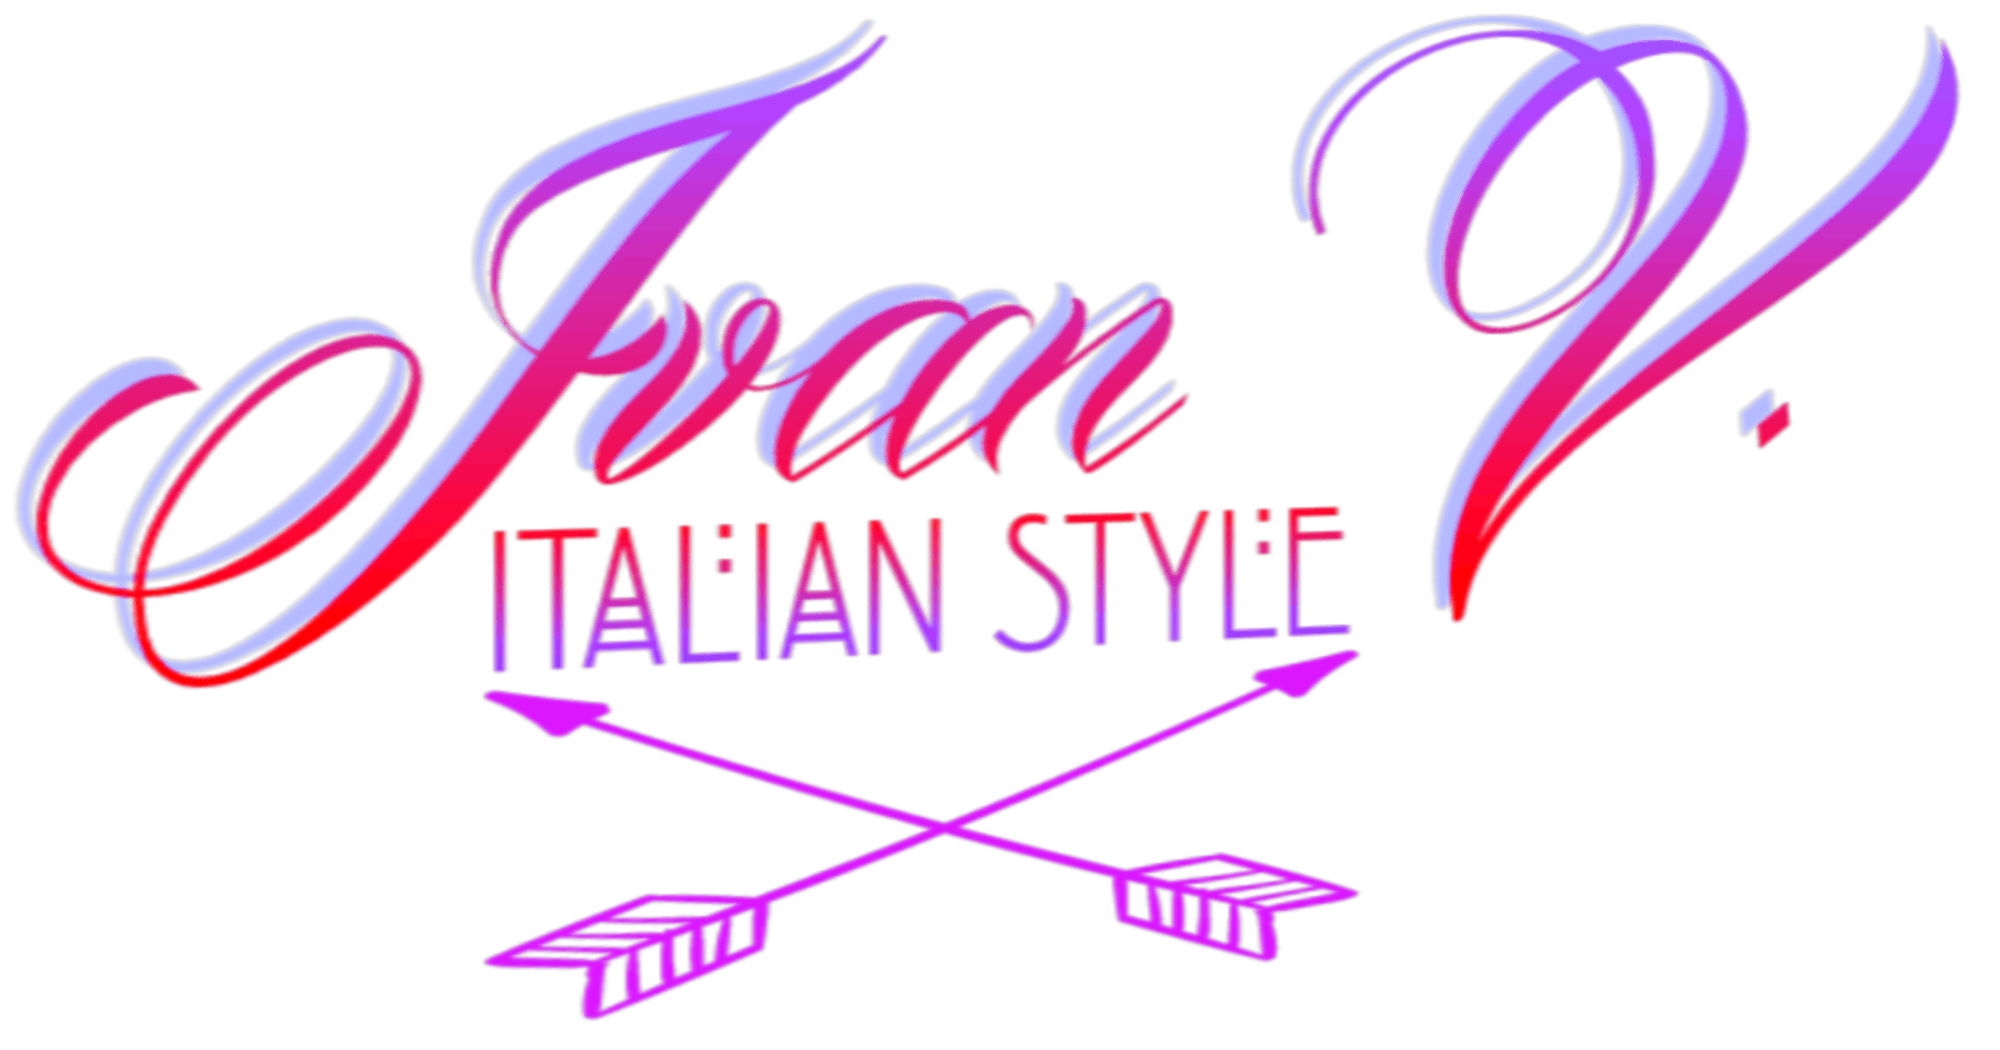 Exclusive fashion clothing and accessories by Ivan Venerucci Italian Style !